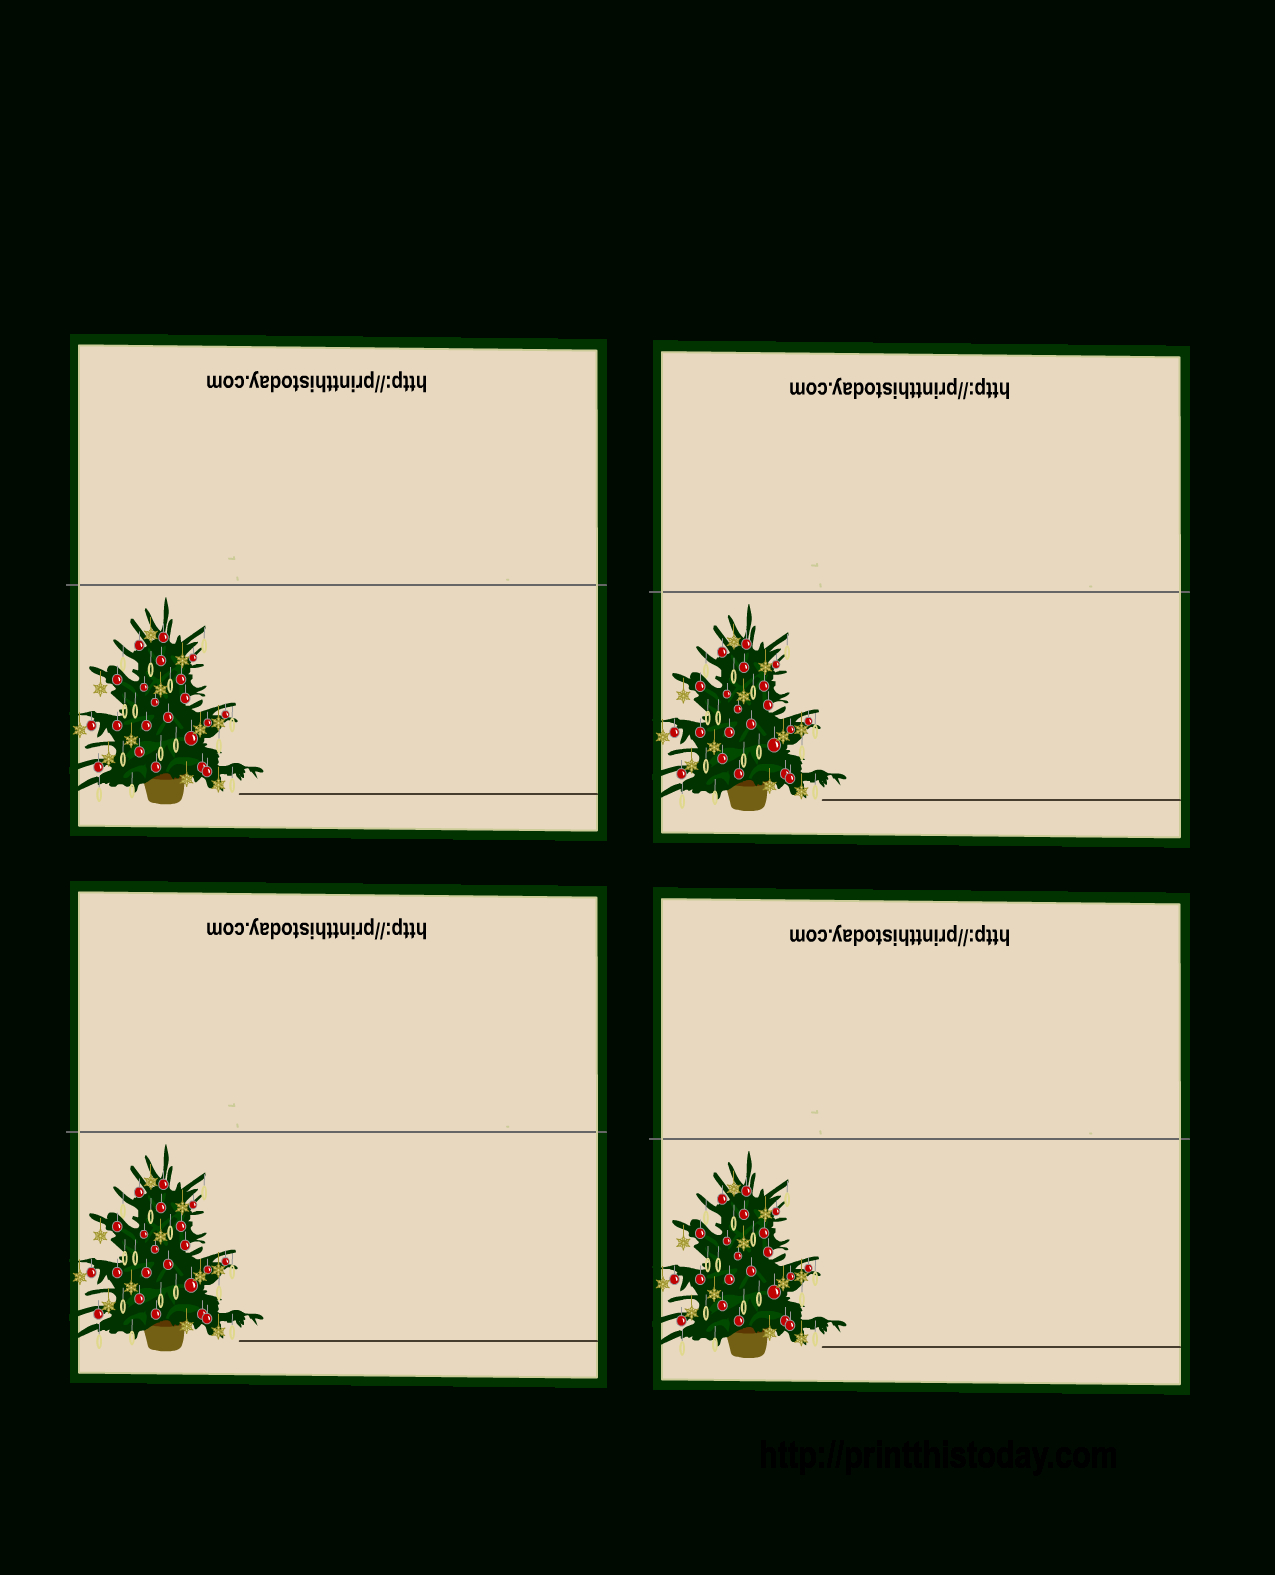 Christmas Free Printable Table Seating Cards - 6.12.hus-Noorderpad.de • - Free Printable Christmas Table Place Cards Template